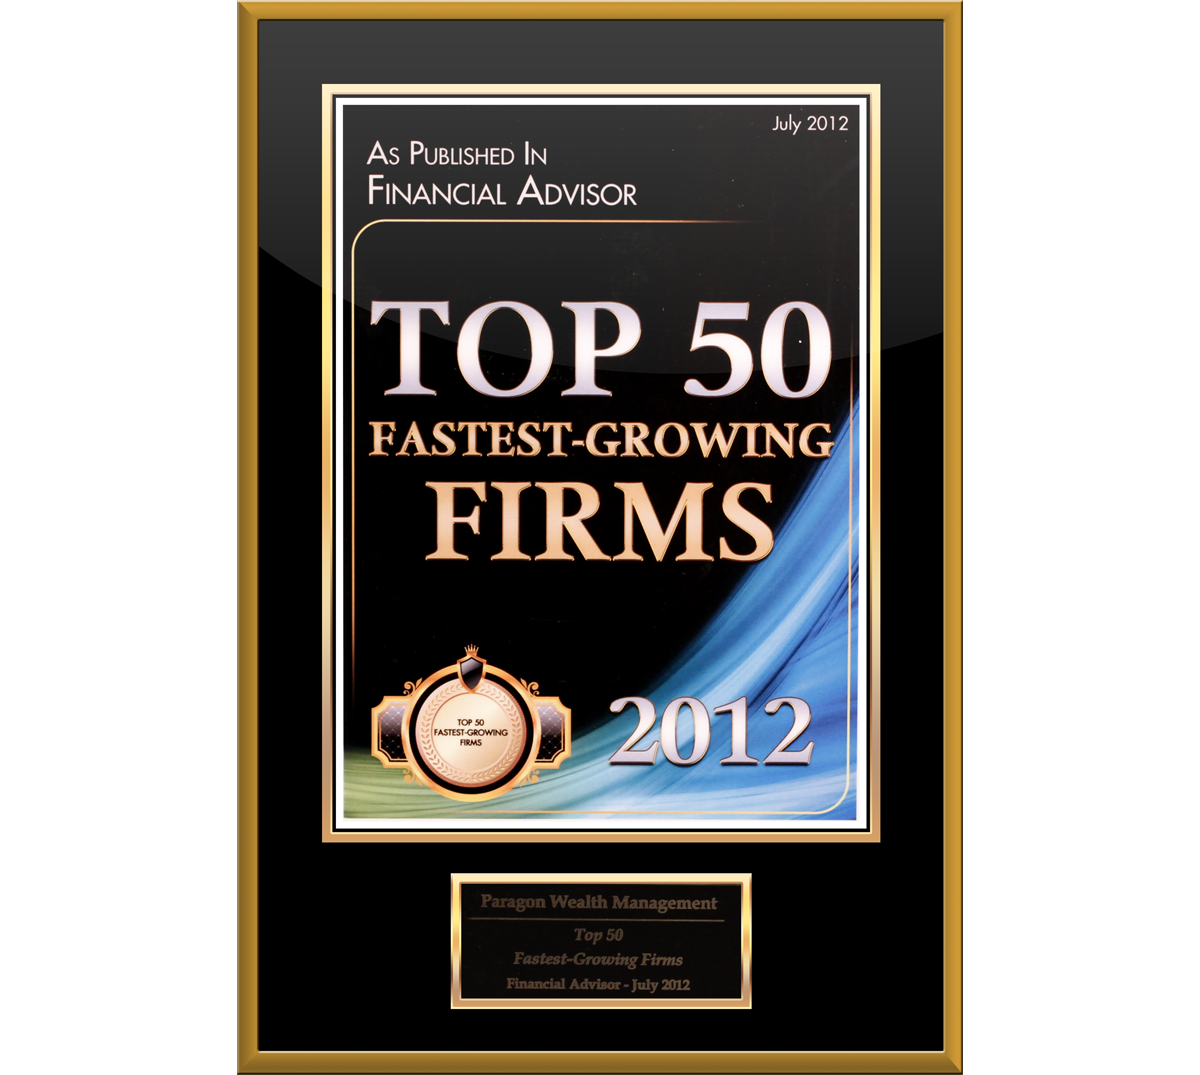 Top 50 Fastest Growing Firms